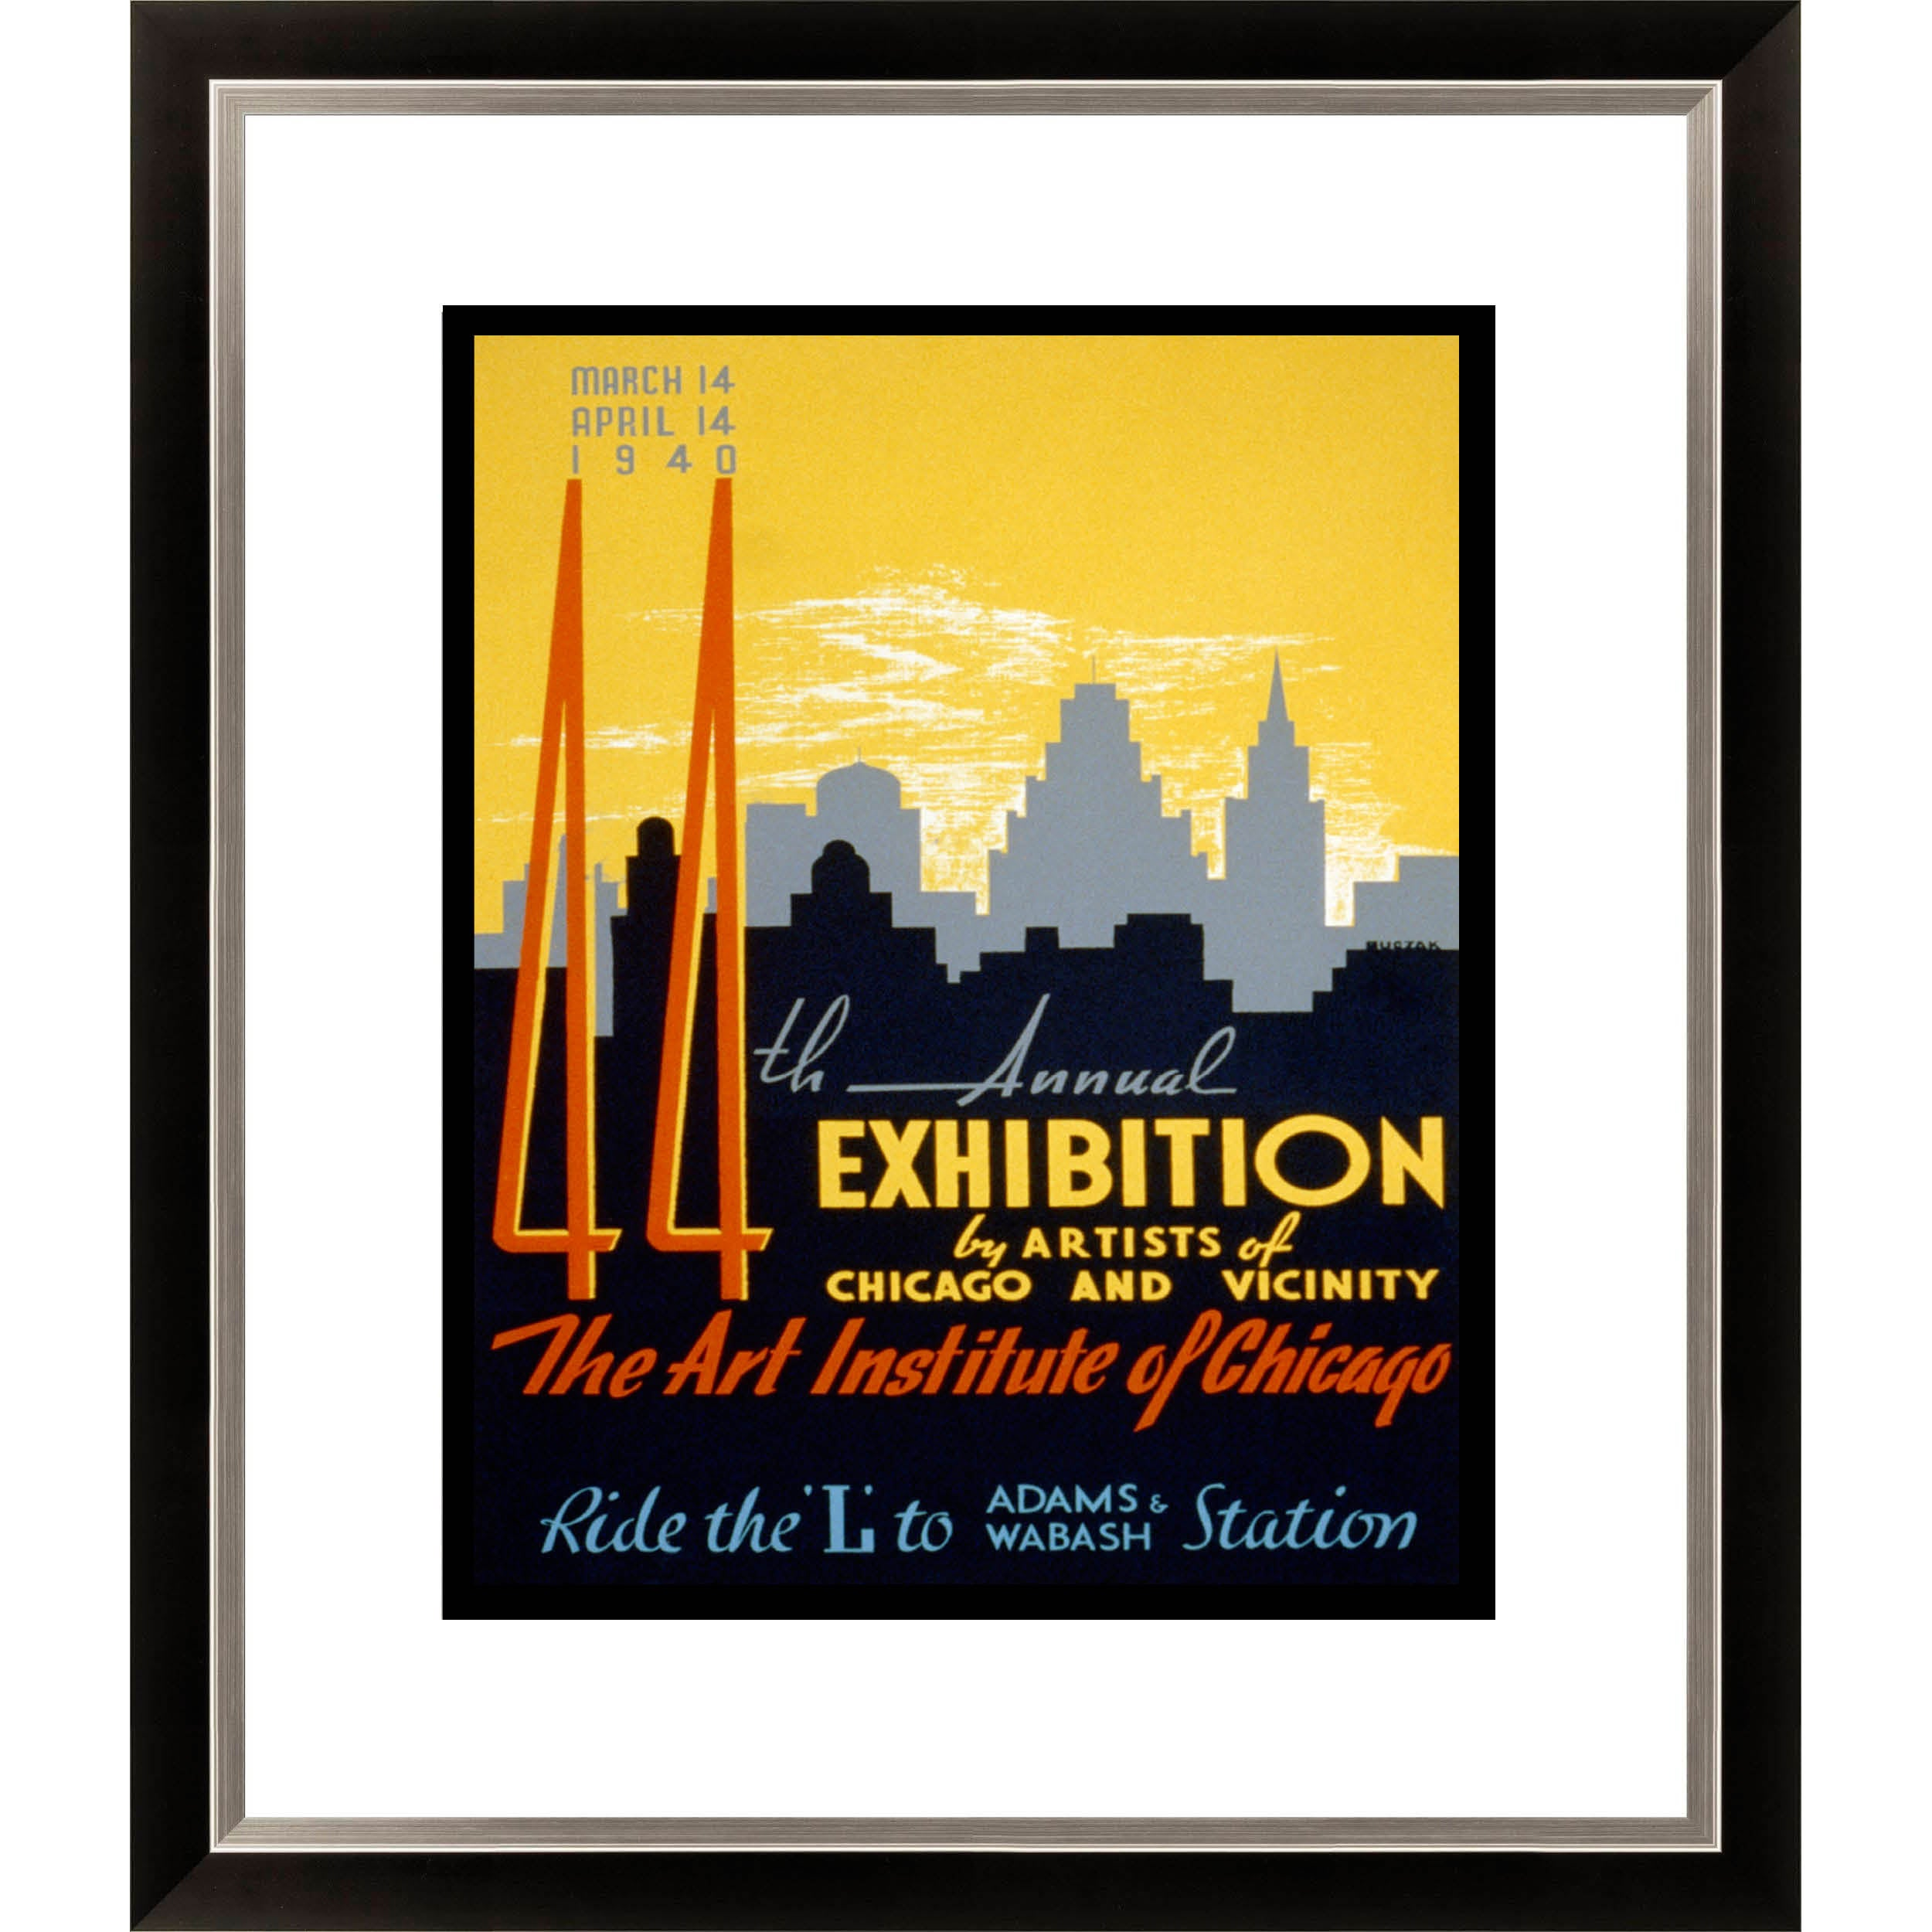 Gallery Direct '44th Annual Exhibition by Artists of Chicago' Framed Limited Edition Giclee